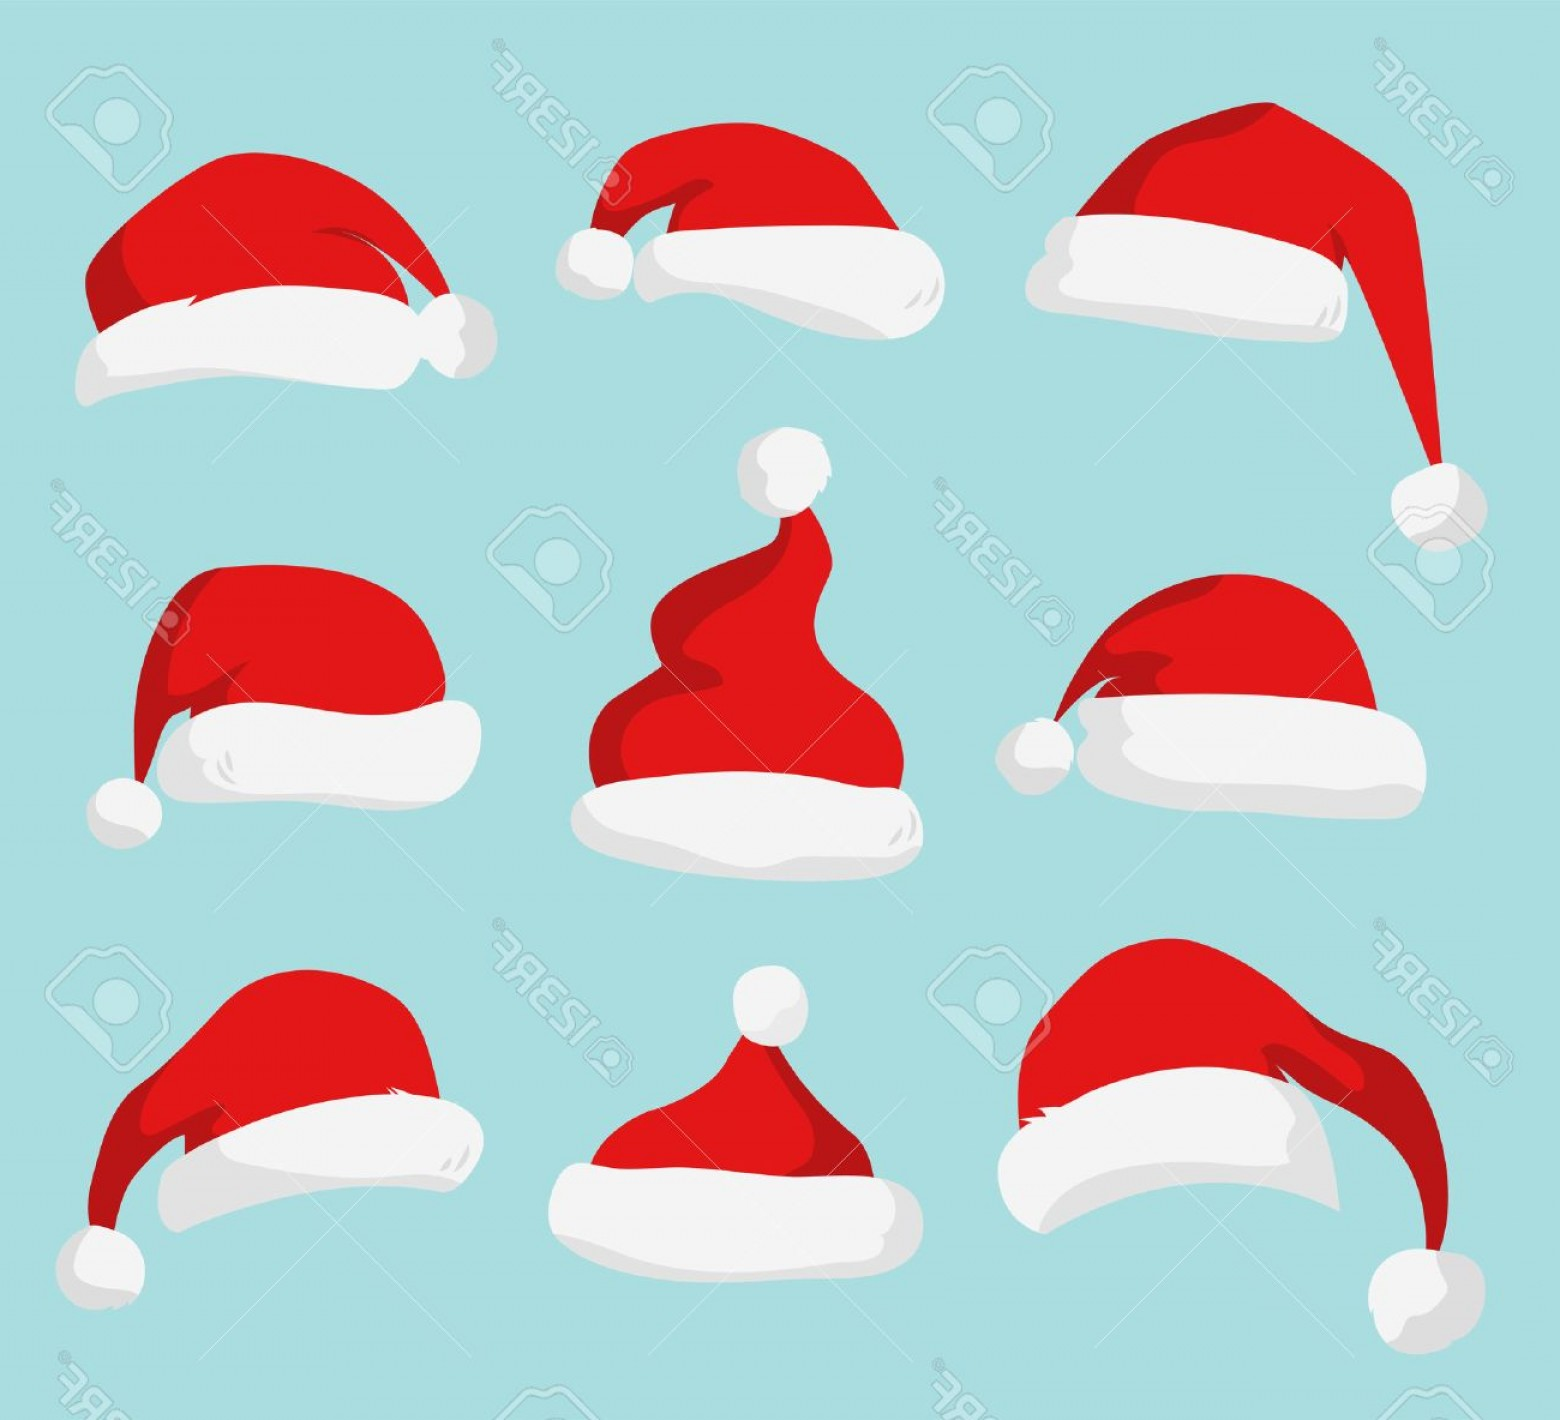 Santa Hat Vector Logo: Photostock Vector Santa Claus Red Hat Silhouette Santa Hat Santa Red Hat Isolated On Background Santa Hat New Year